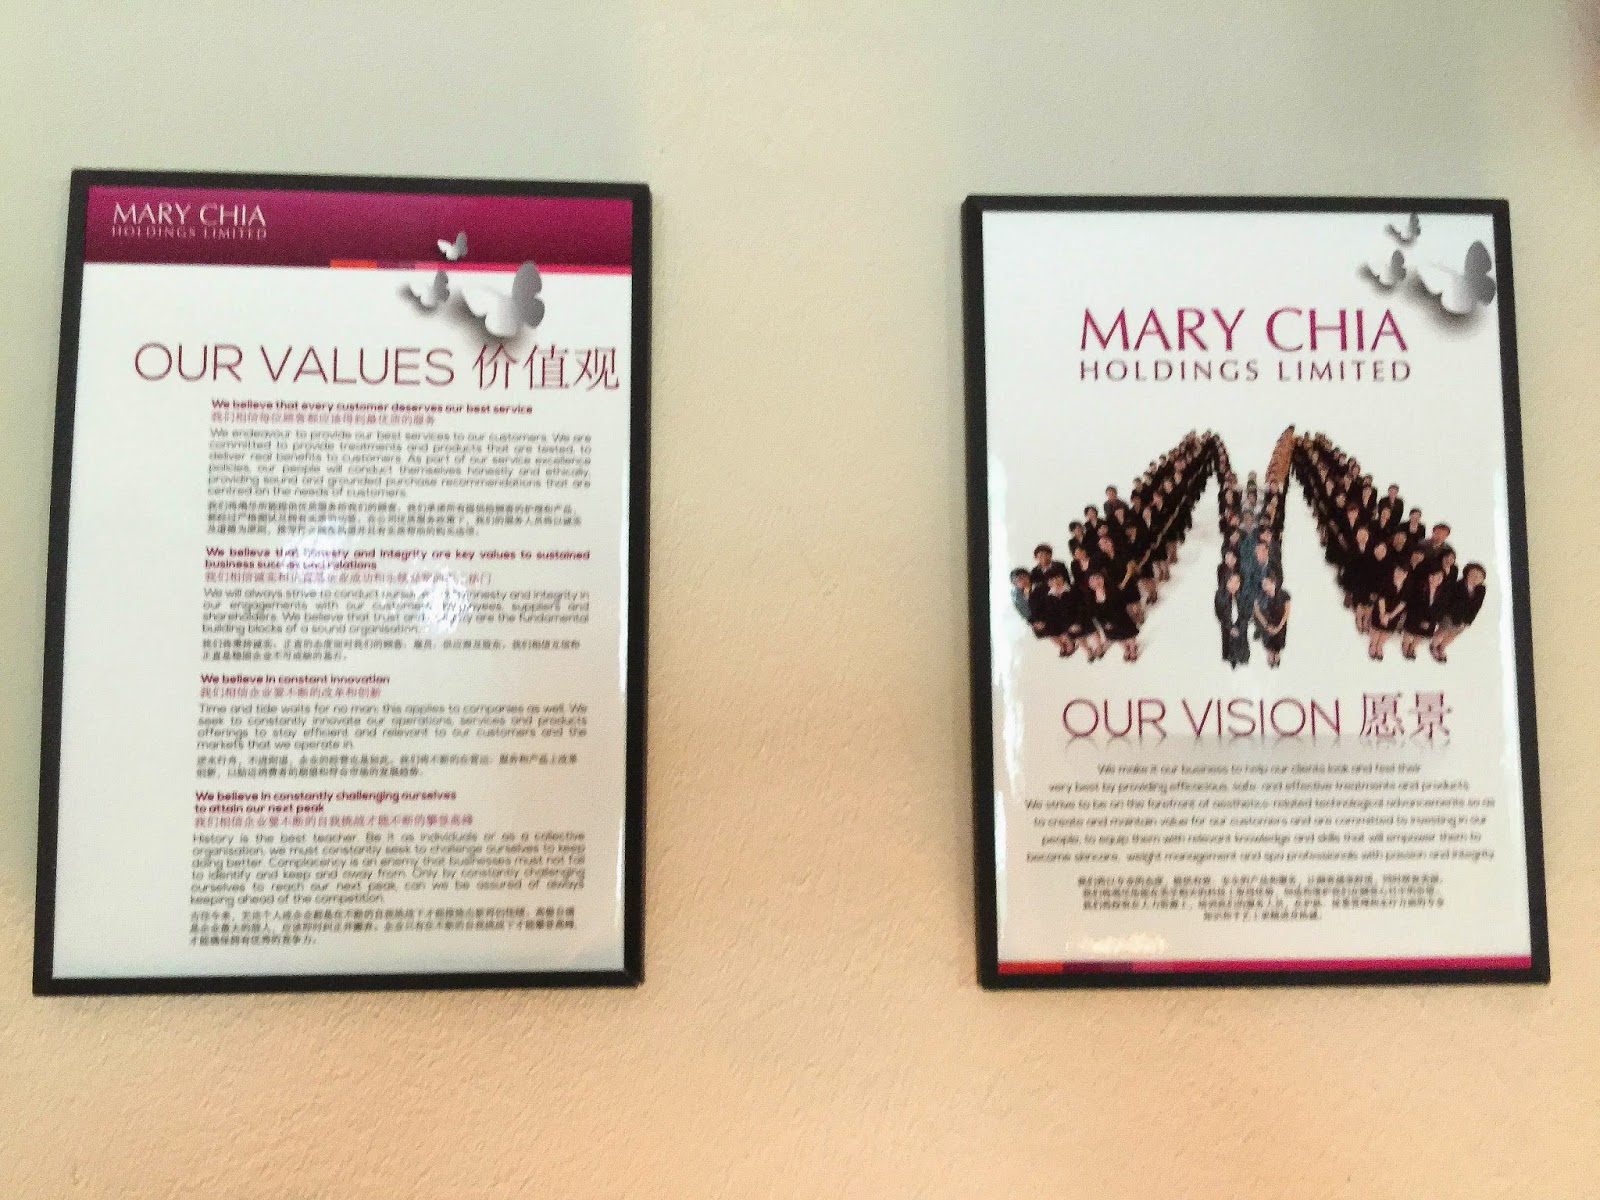 Mary Chia Holdings brand values